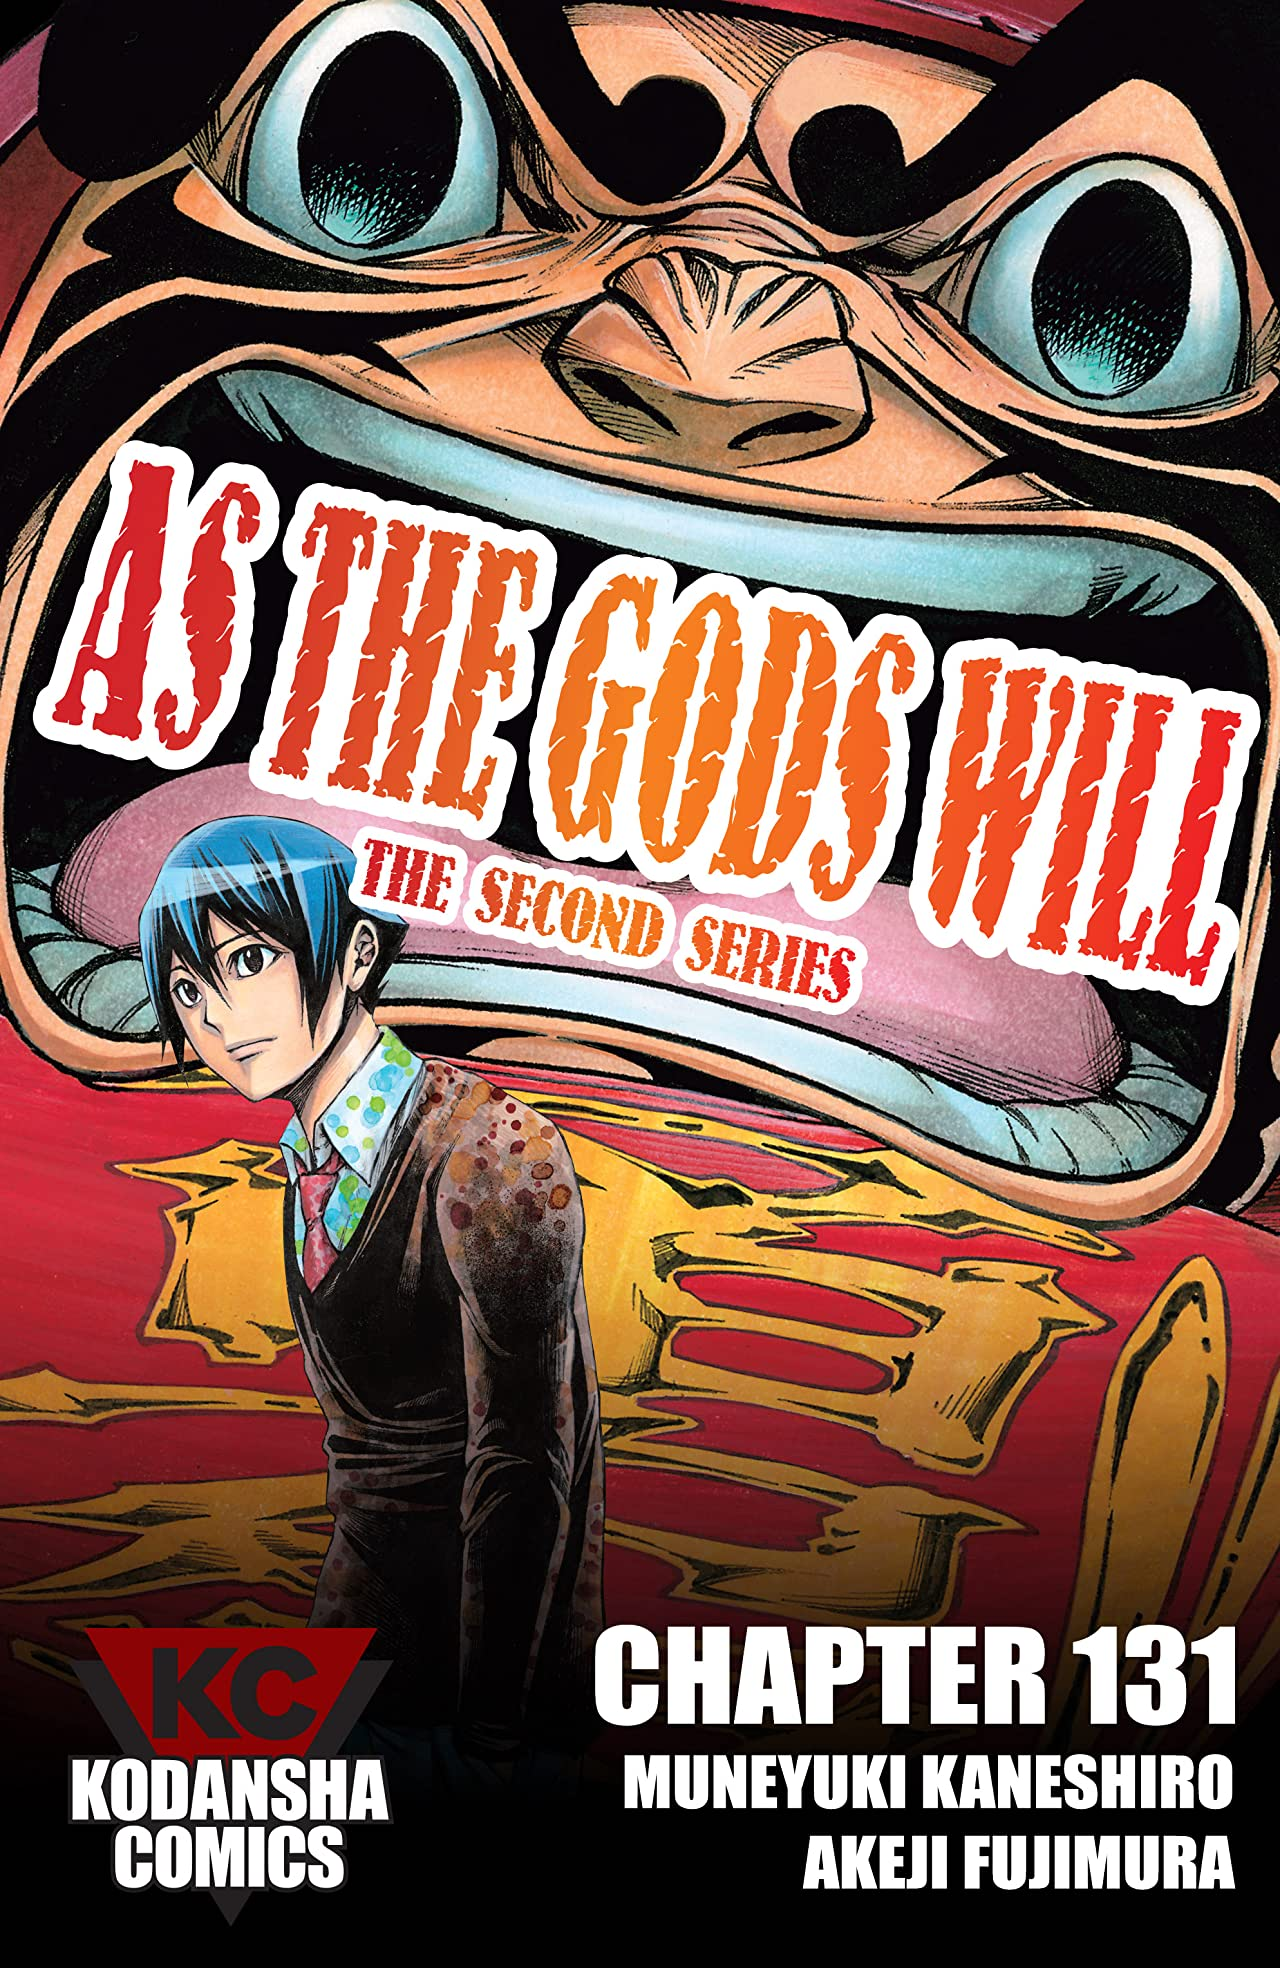 As The Gods Will: The Second Series #131